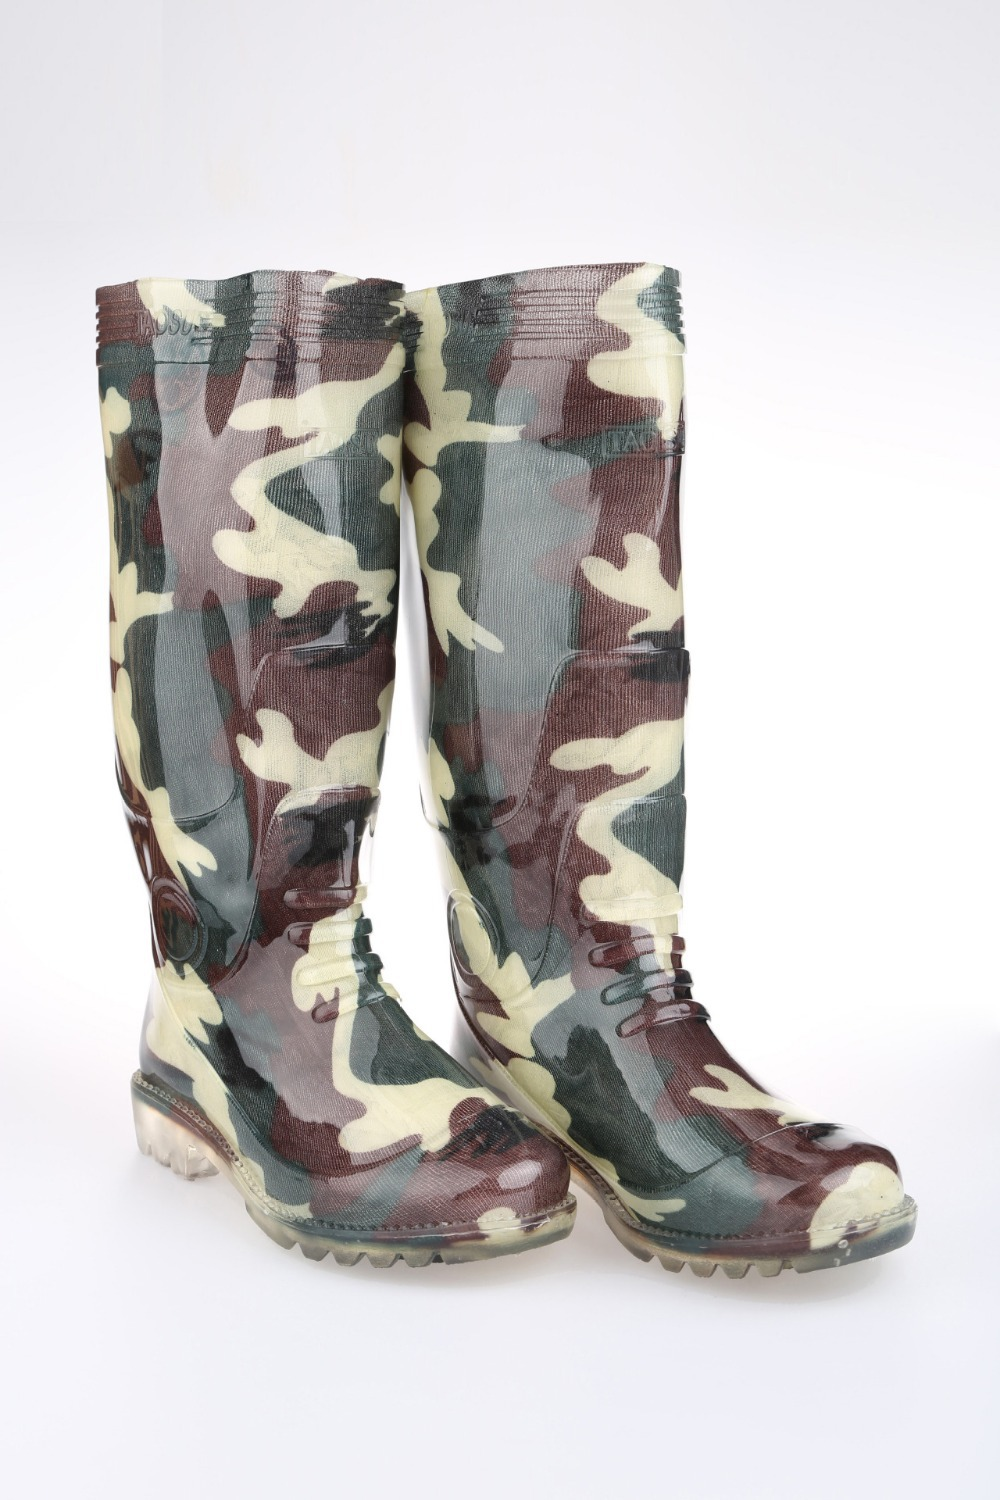 Gallery For gt Work Rain Boots Men